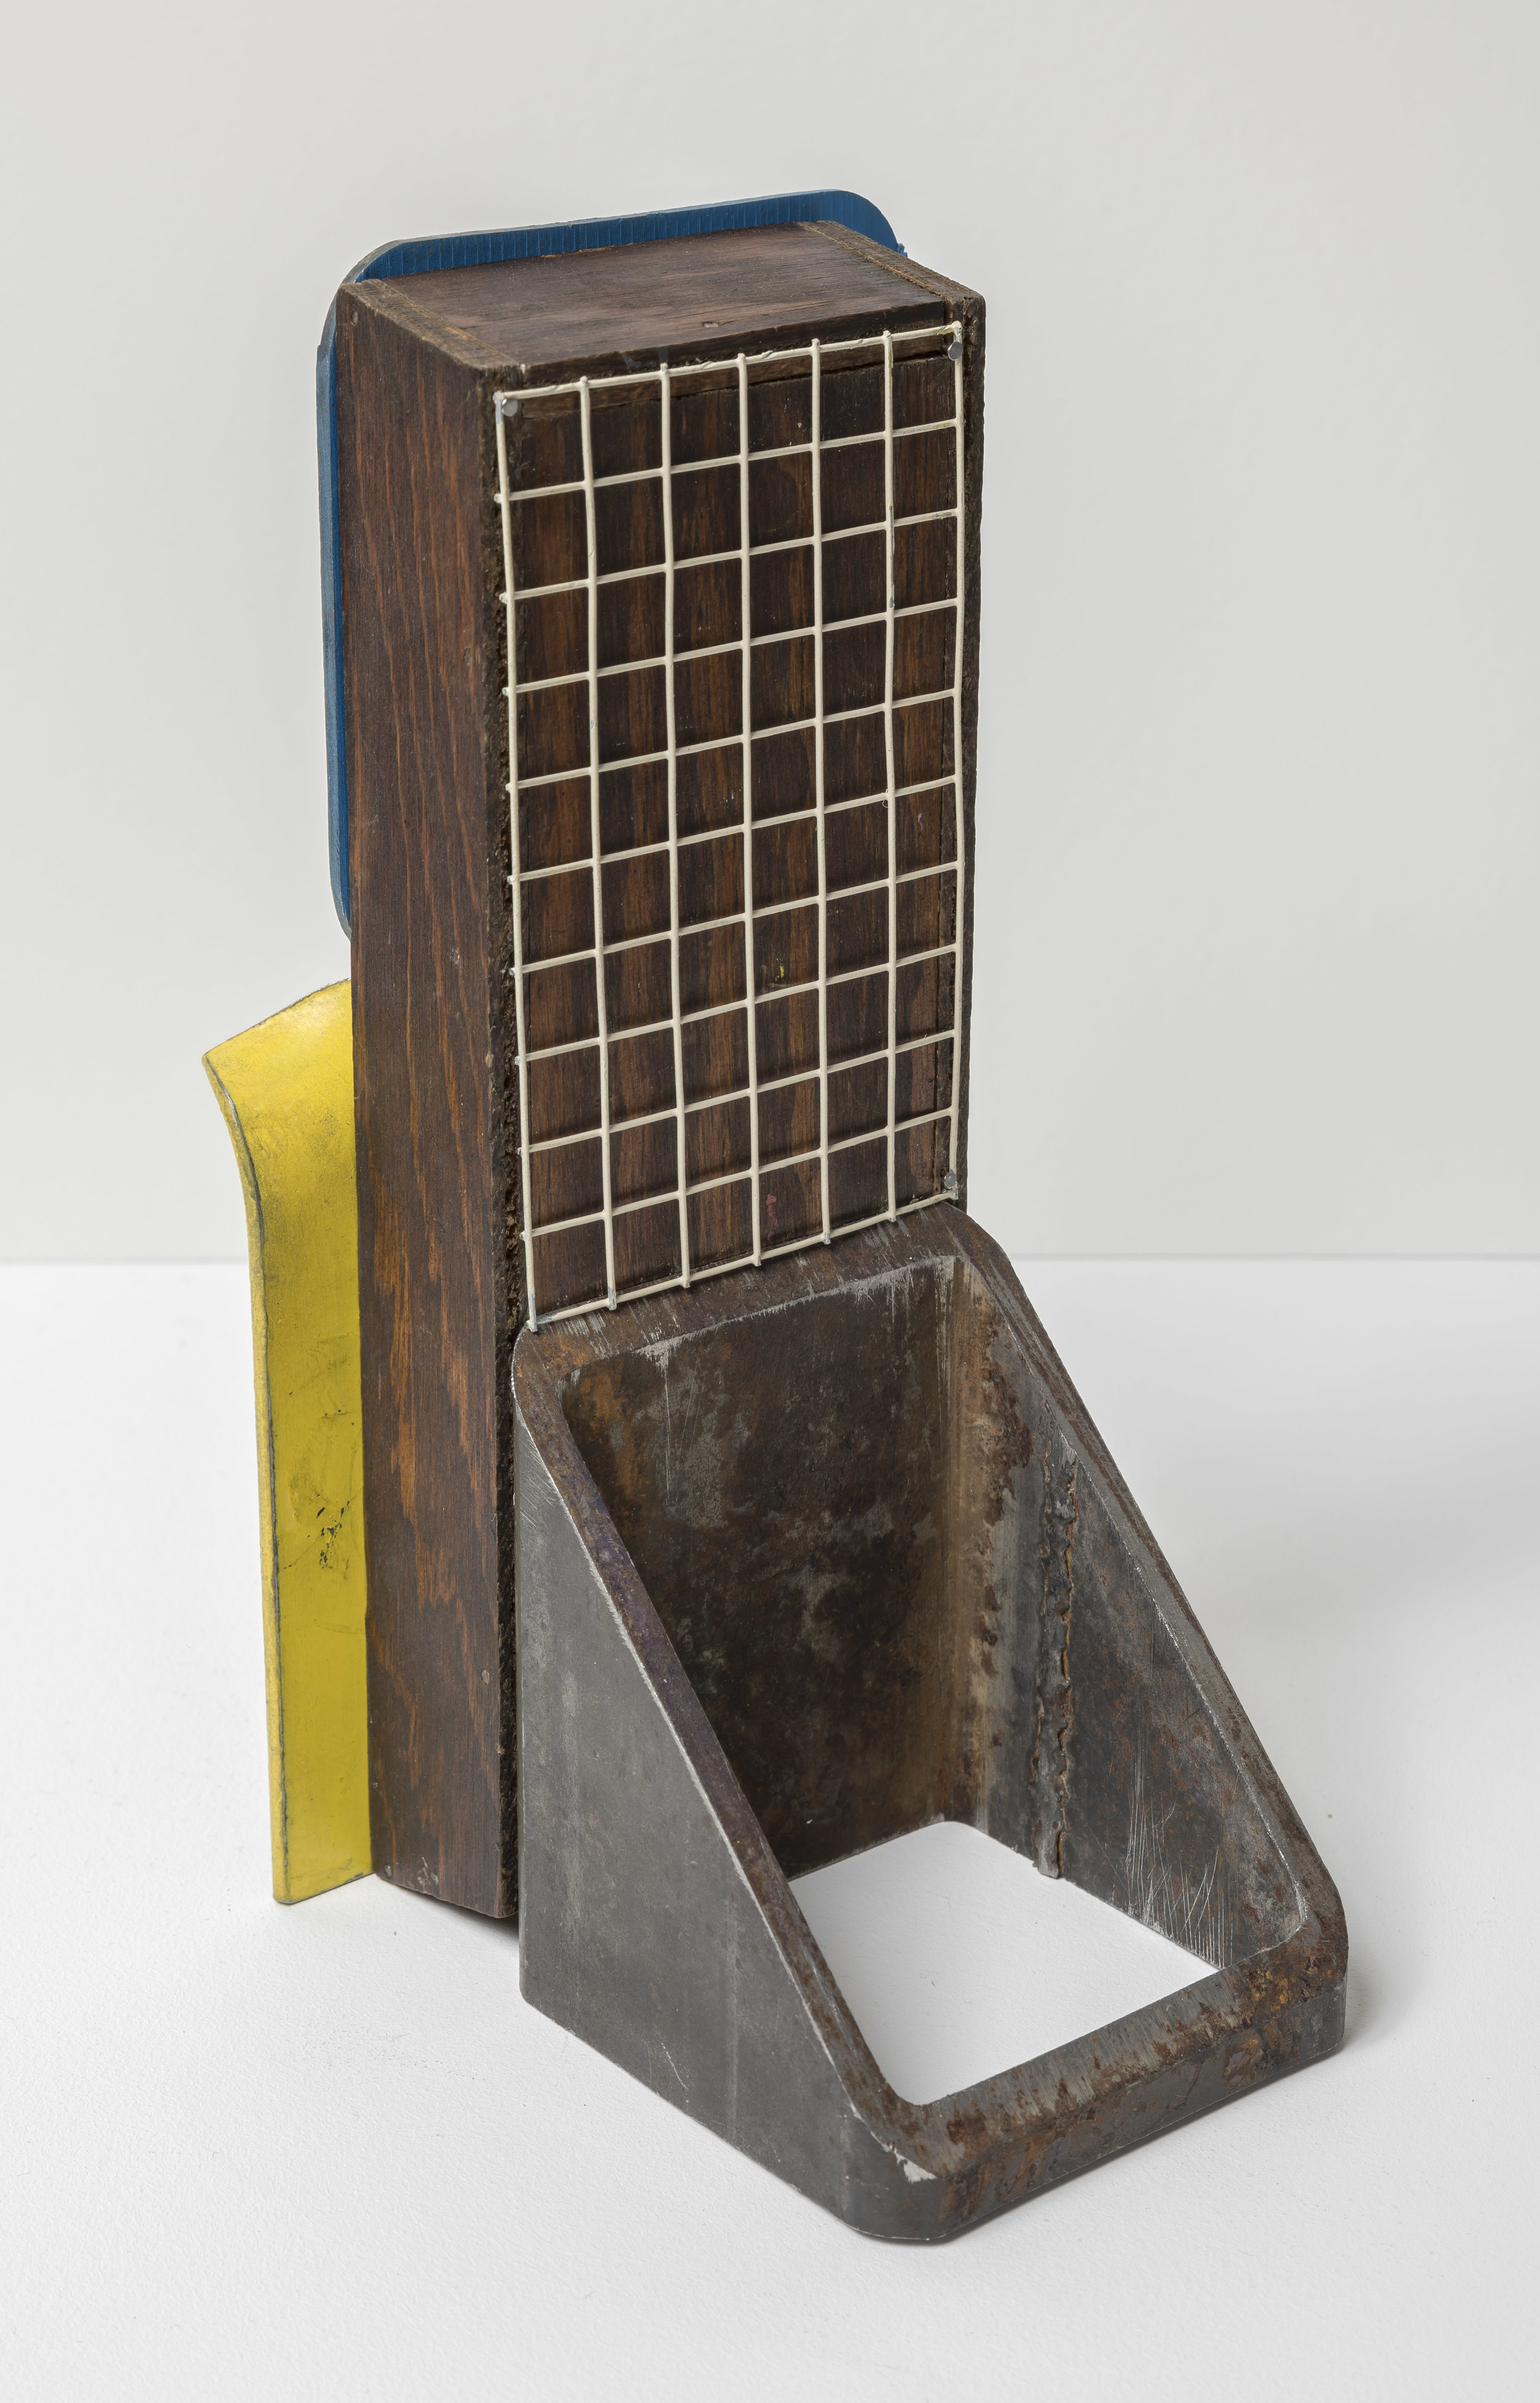 Assemblage IV , 2019 steel, wood, magnet, aerosol paint 4 x 9 1/2 x 5 inches; 10.2 x 24.1 x 12.7 centimeters